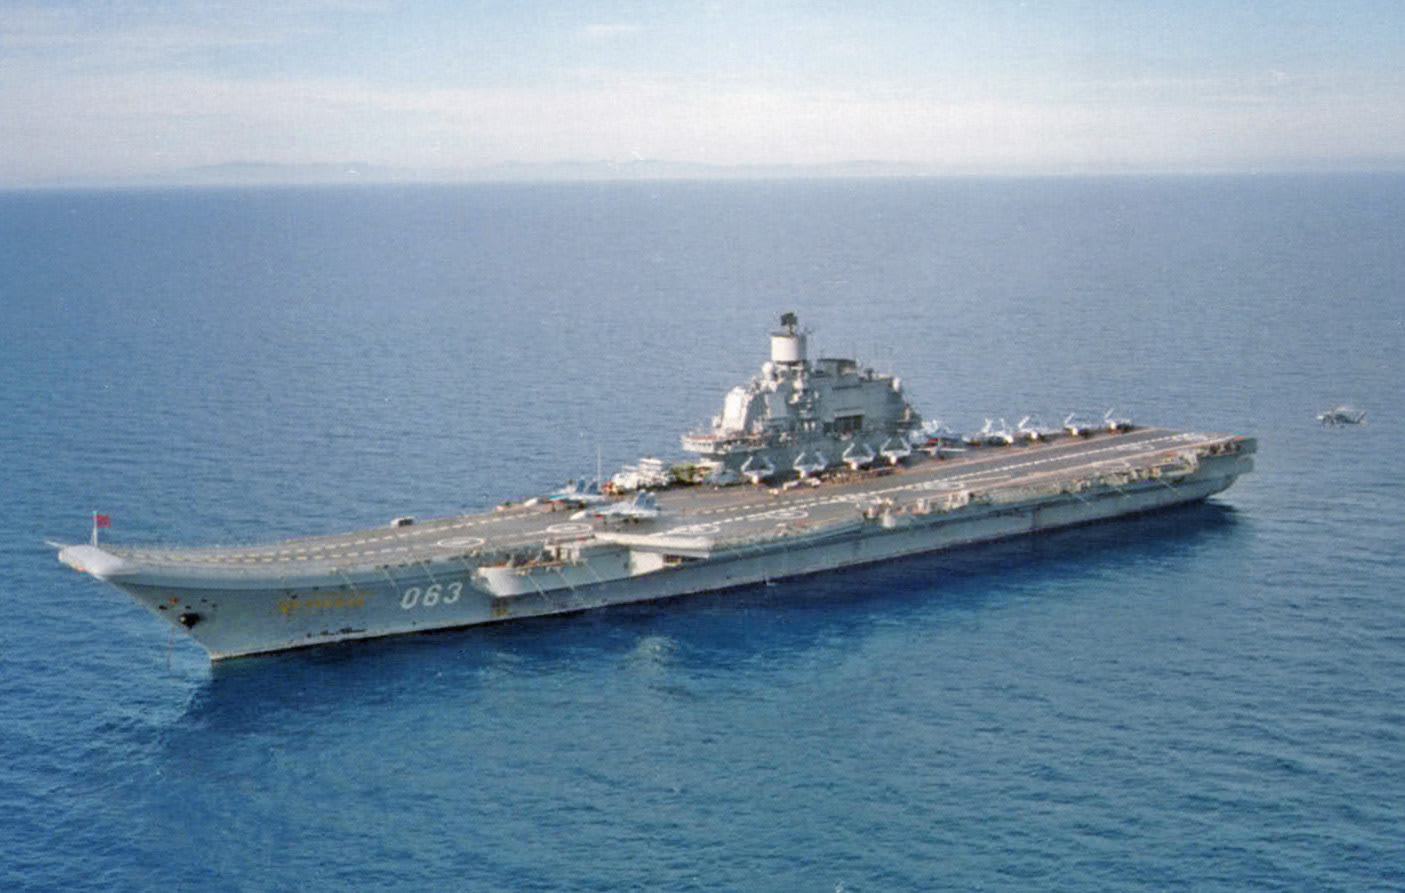 Russia wants to build a supercarrier, and it's a total waste